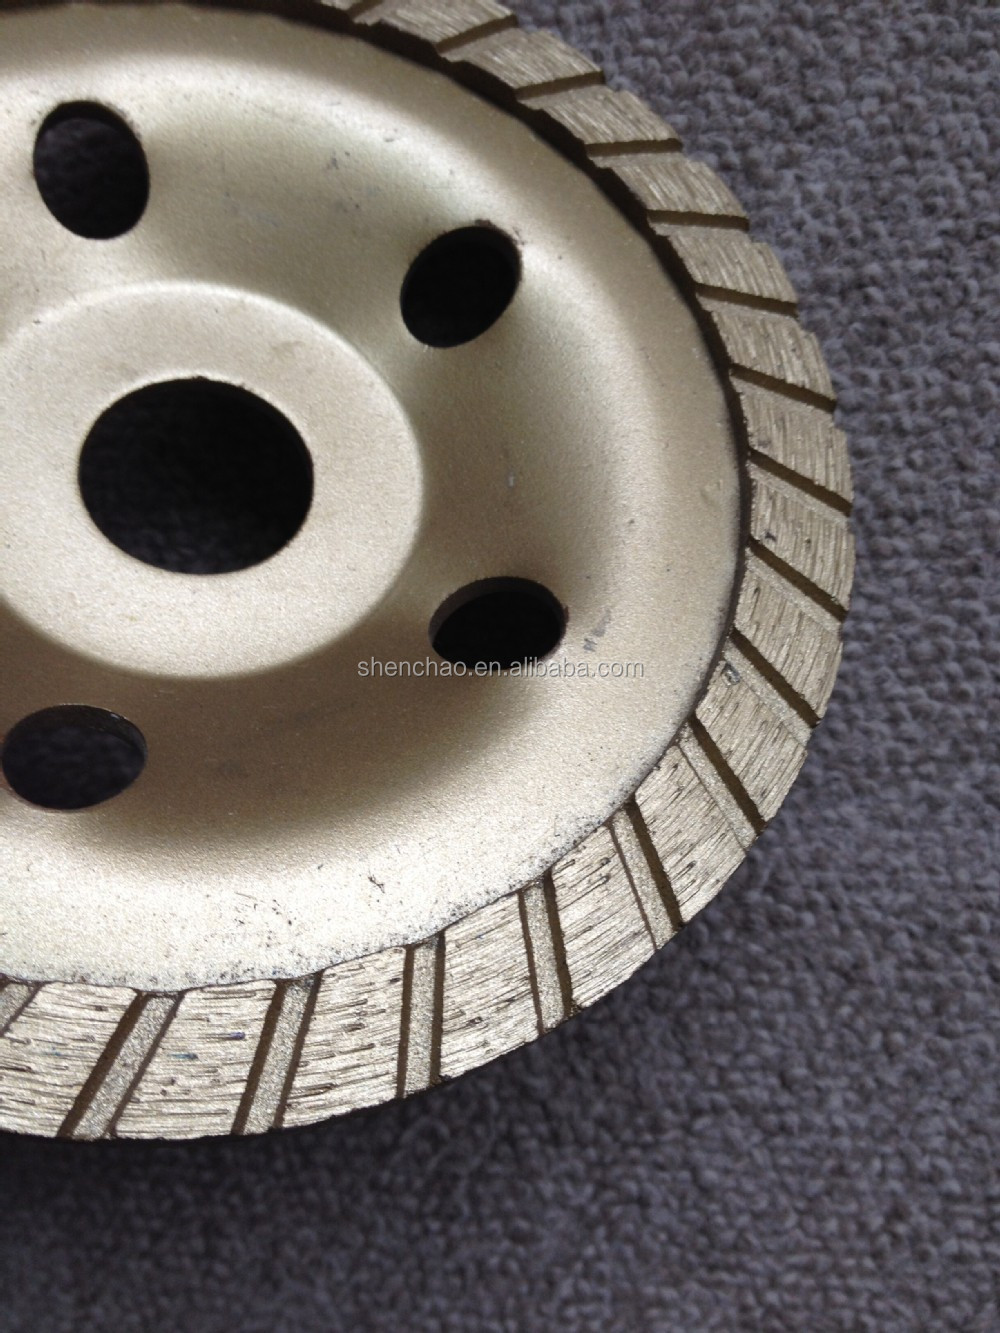 127*22.23/16mm turbo cup wheel have long grinding life for grinding and polishing concrete,masonry,brick,block etc